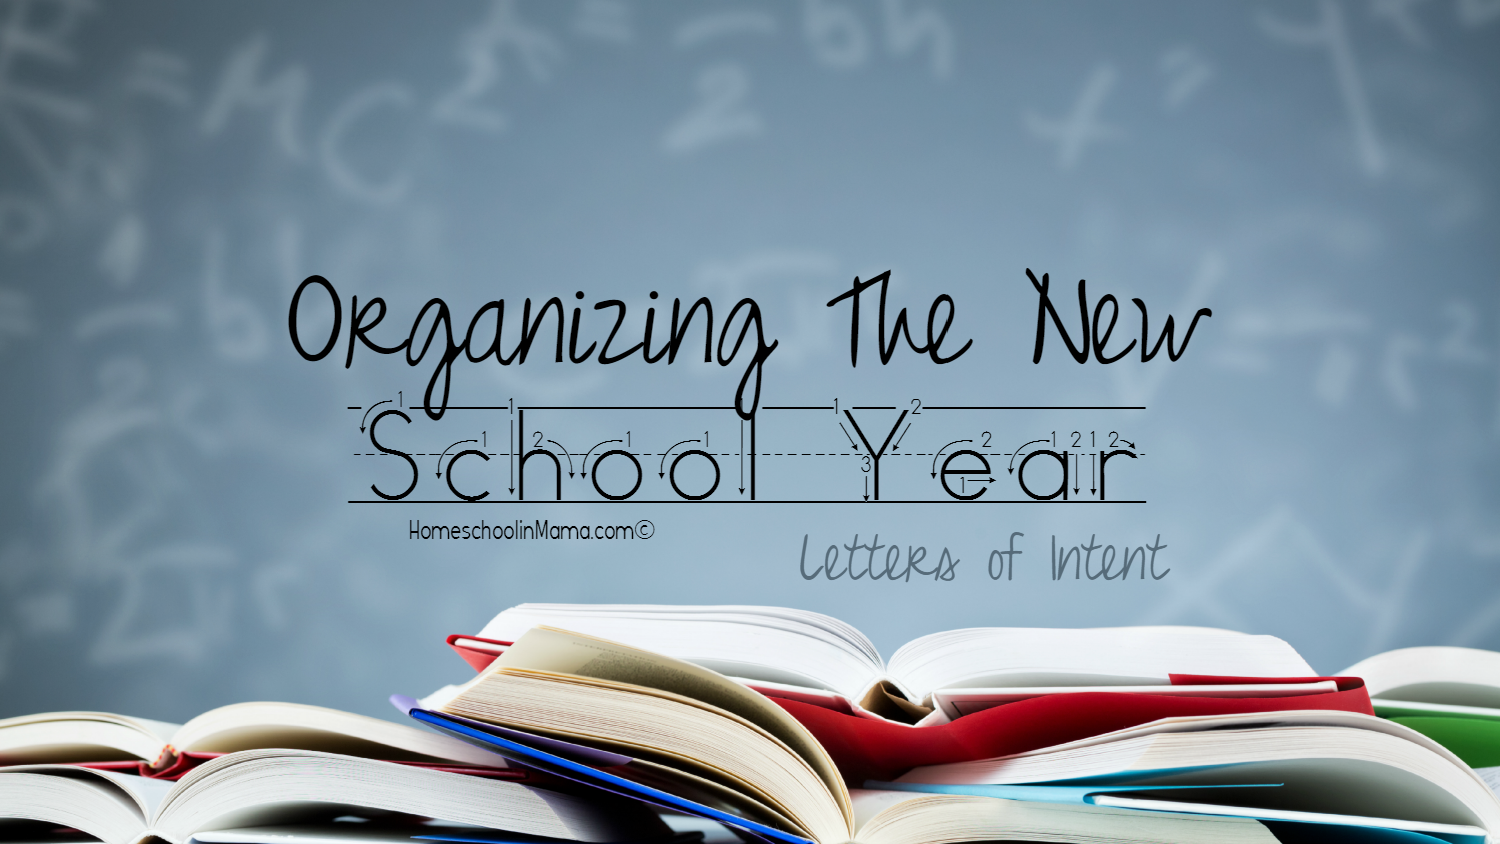 Organizing The New School Year – Letters of Intent